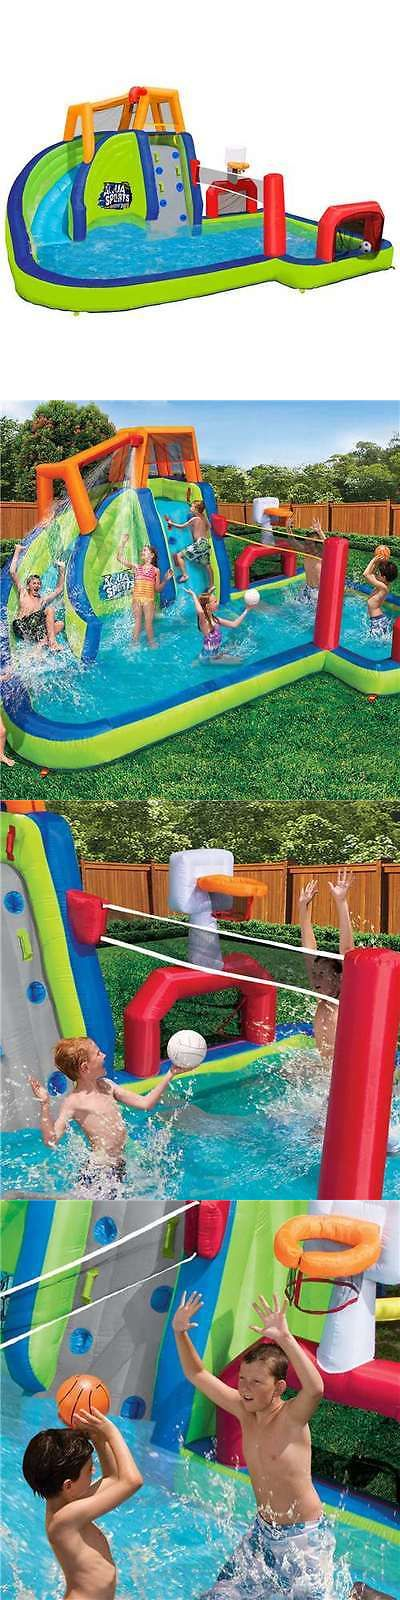 Water Slides 145992: Banzai Inflatable Aqua Sports Splash Pool And Slide Backyard Water Park (Open Box) -> BUY IT NOW ONLY: $524.95 on eBay!